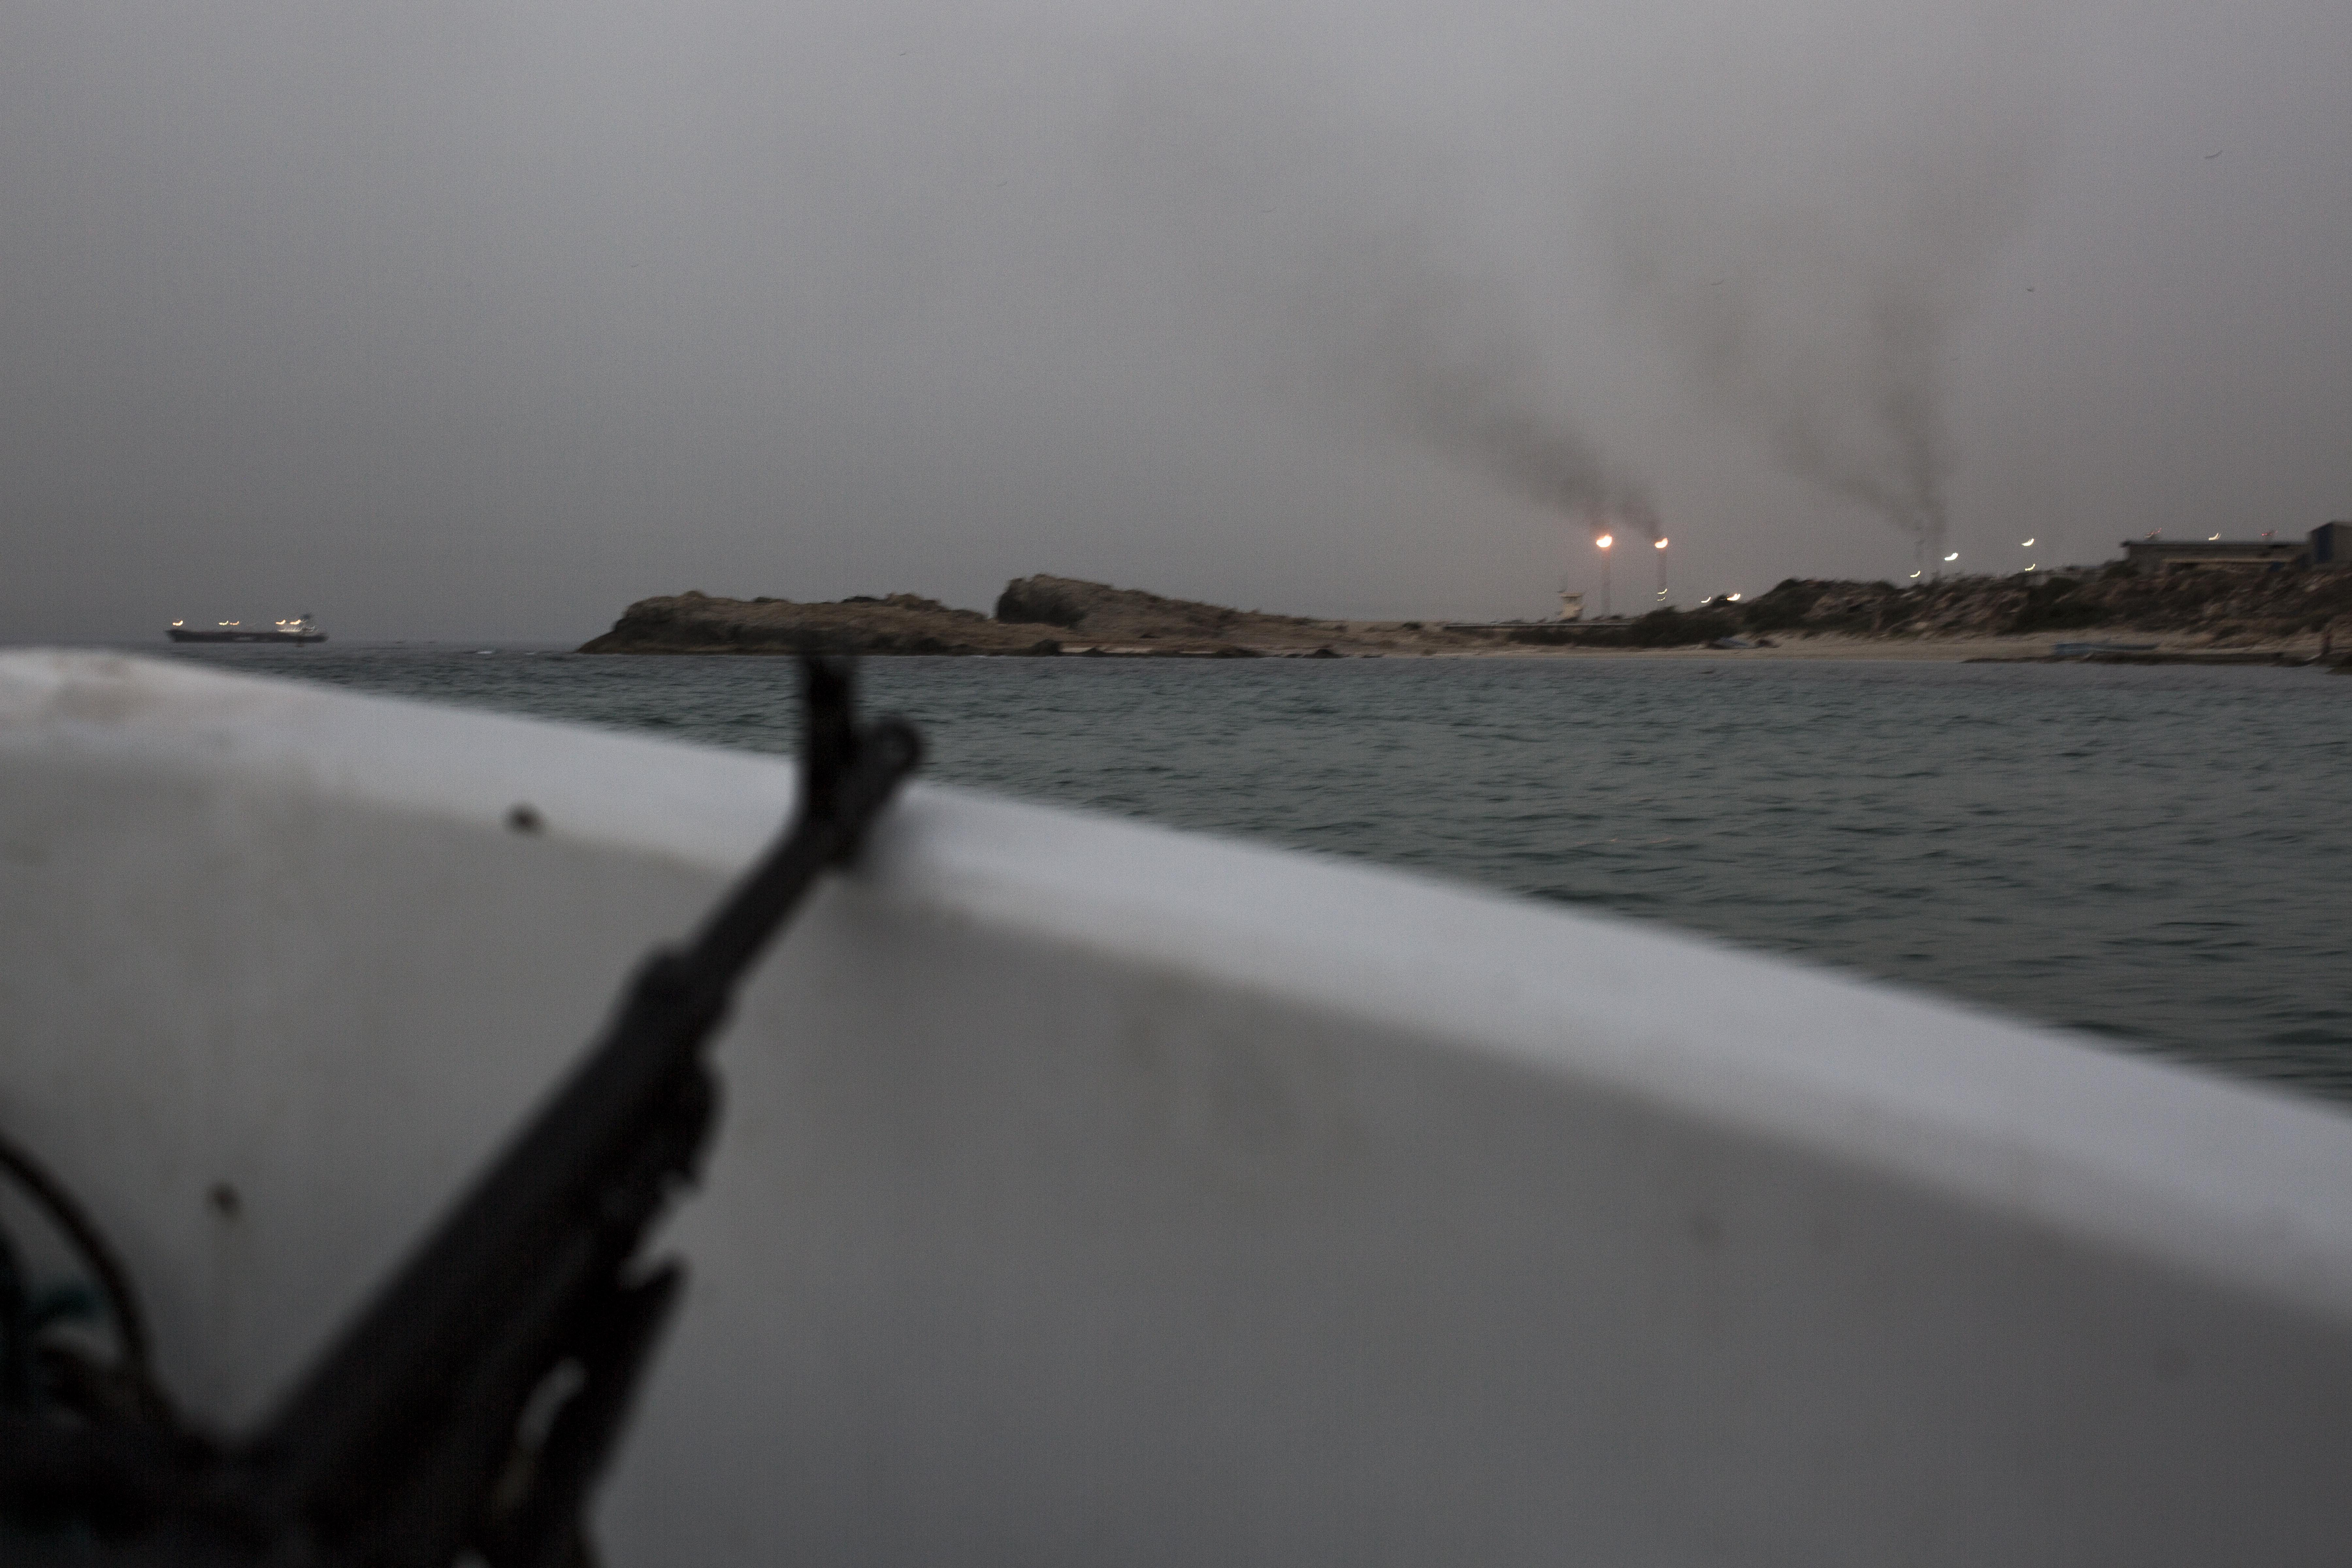 The Zawyah refinery seen from a boat during surveillance operations carried out by Libyan coastguards.